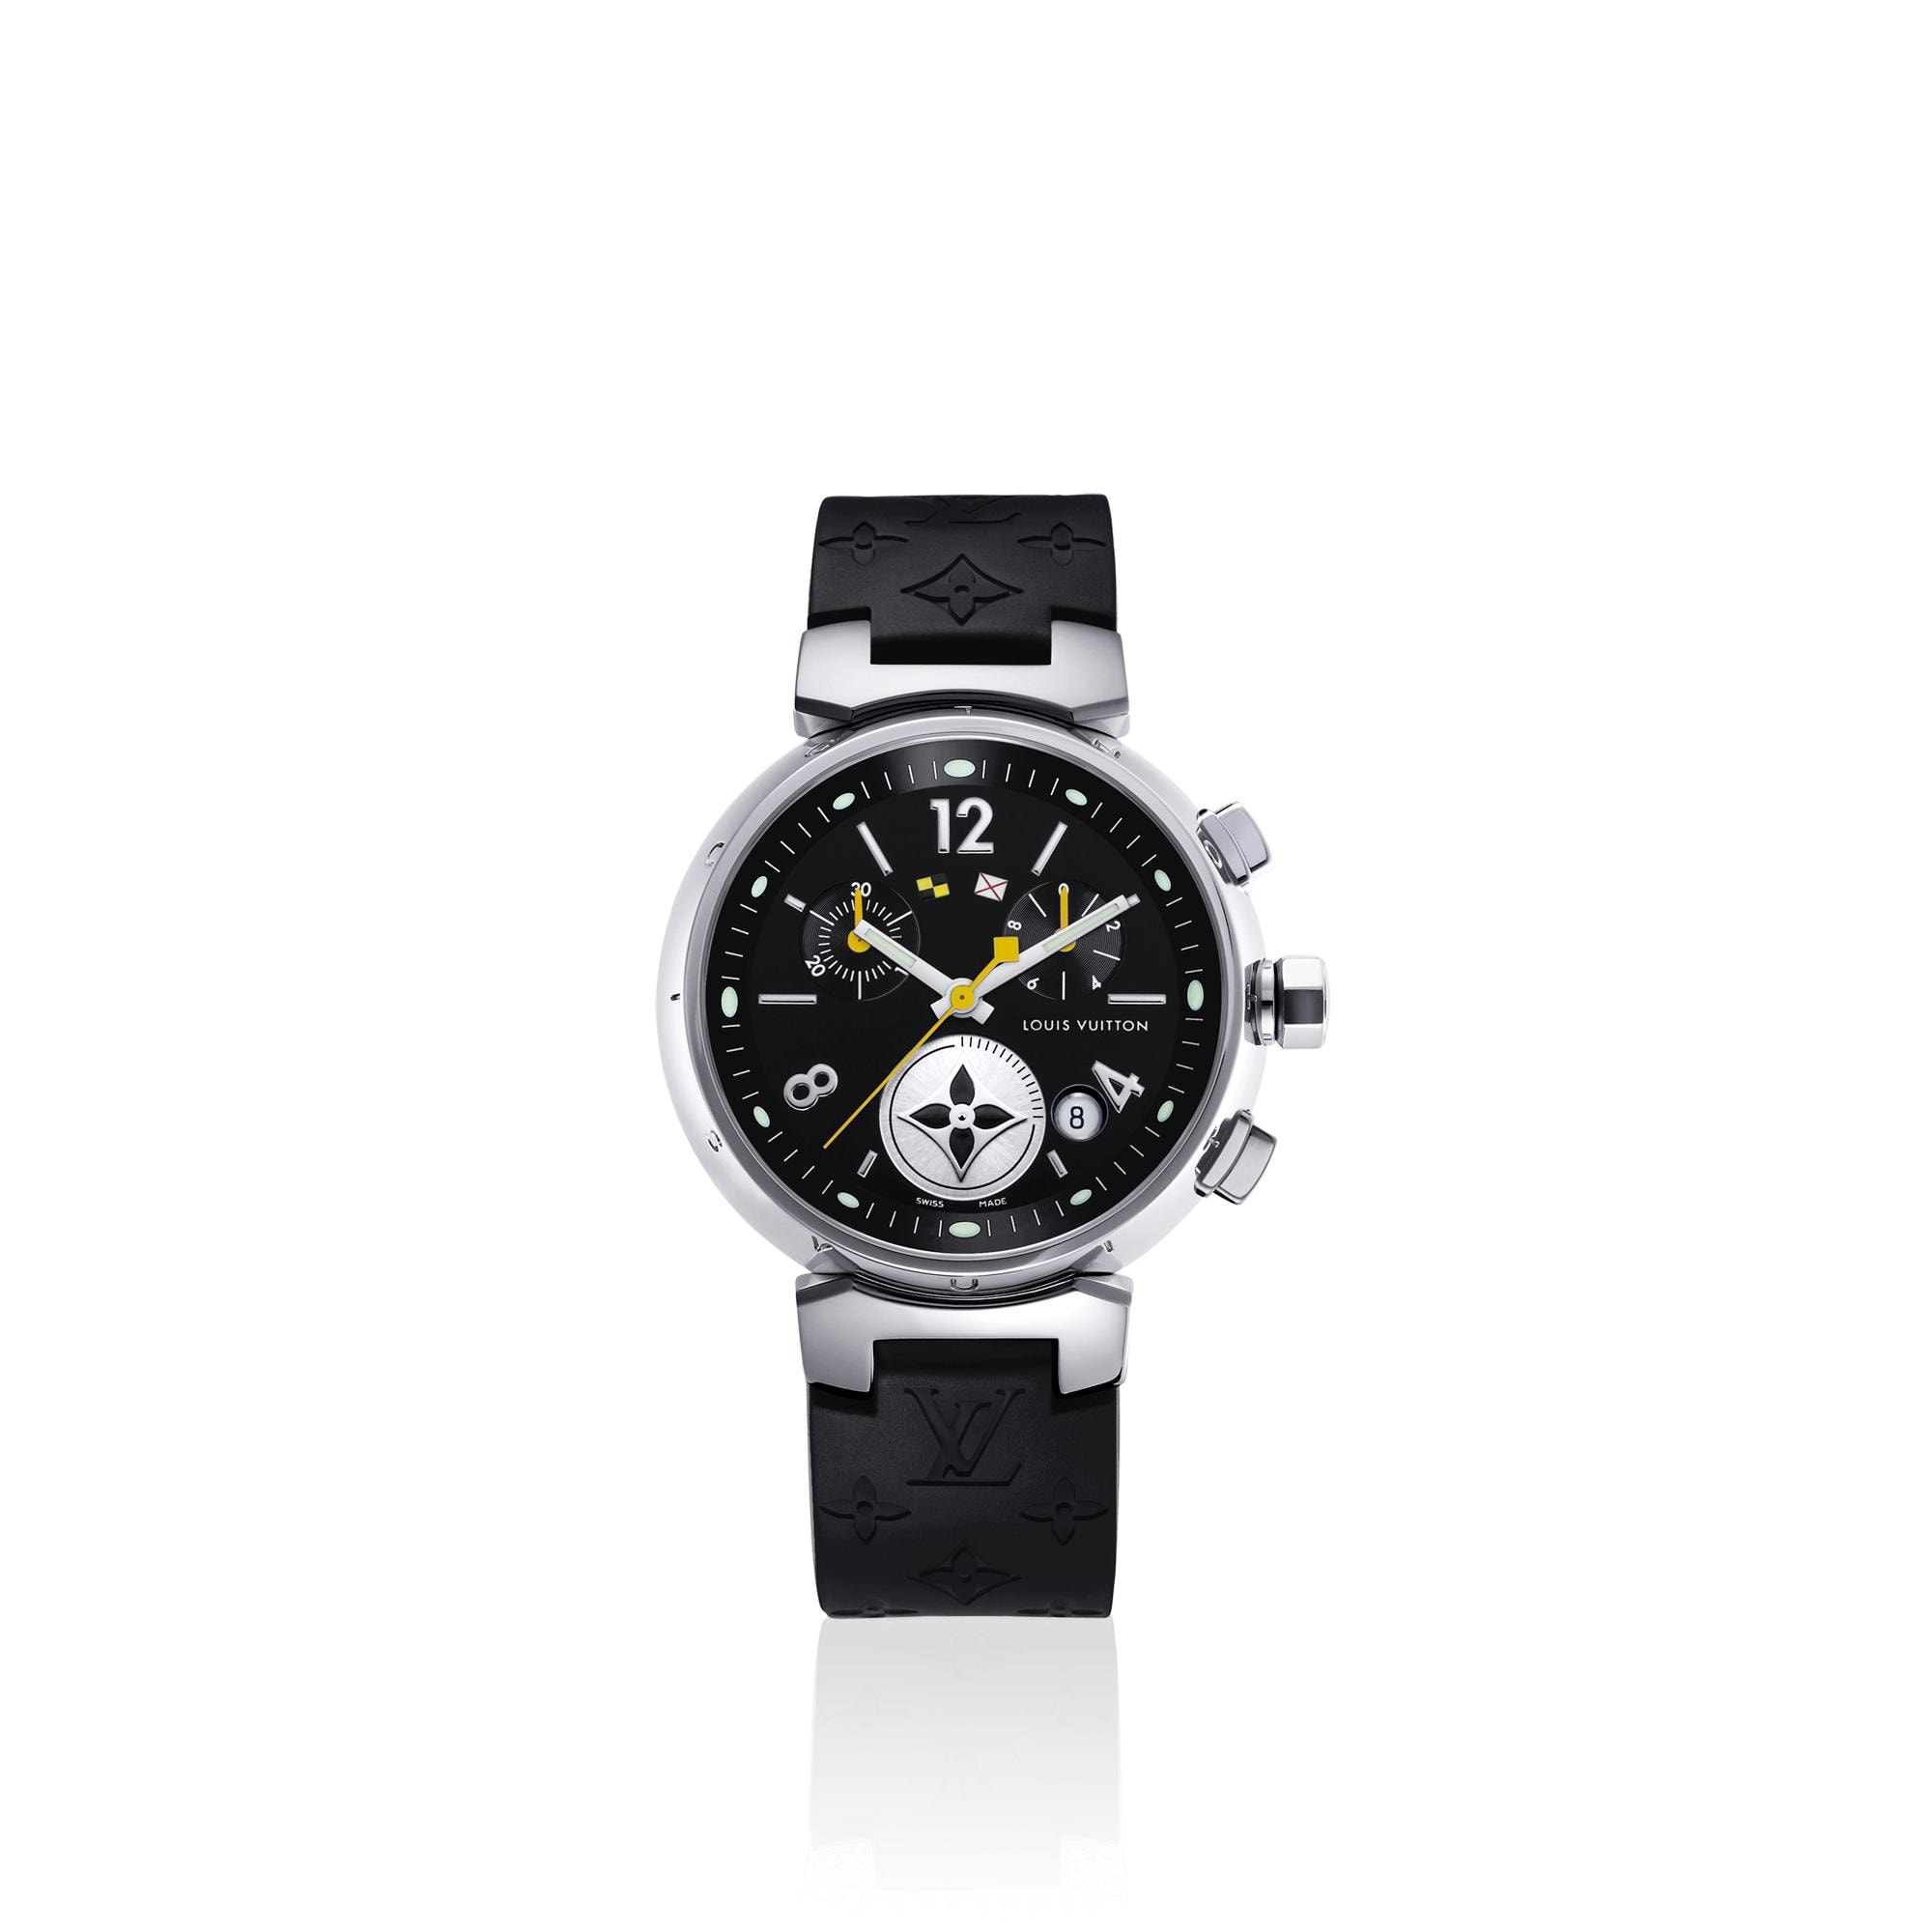 LOUIS VUITTON?Tambour Lovely Cup 34mm   - Tambour Lovely Cup  Timepieces